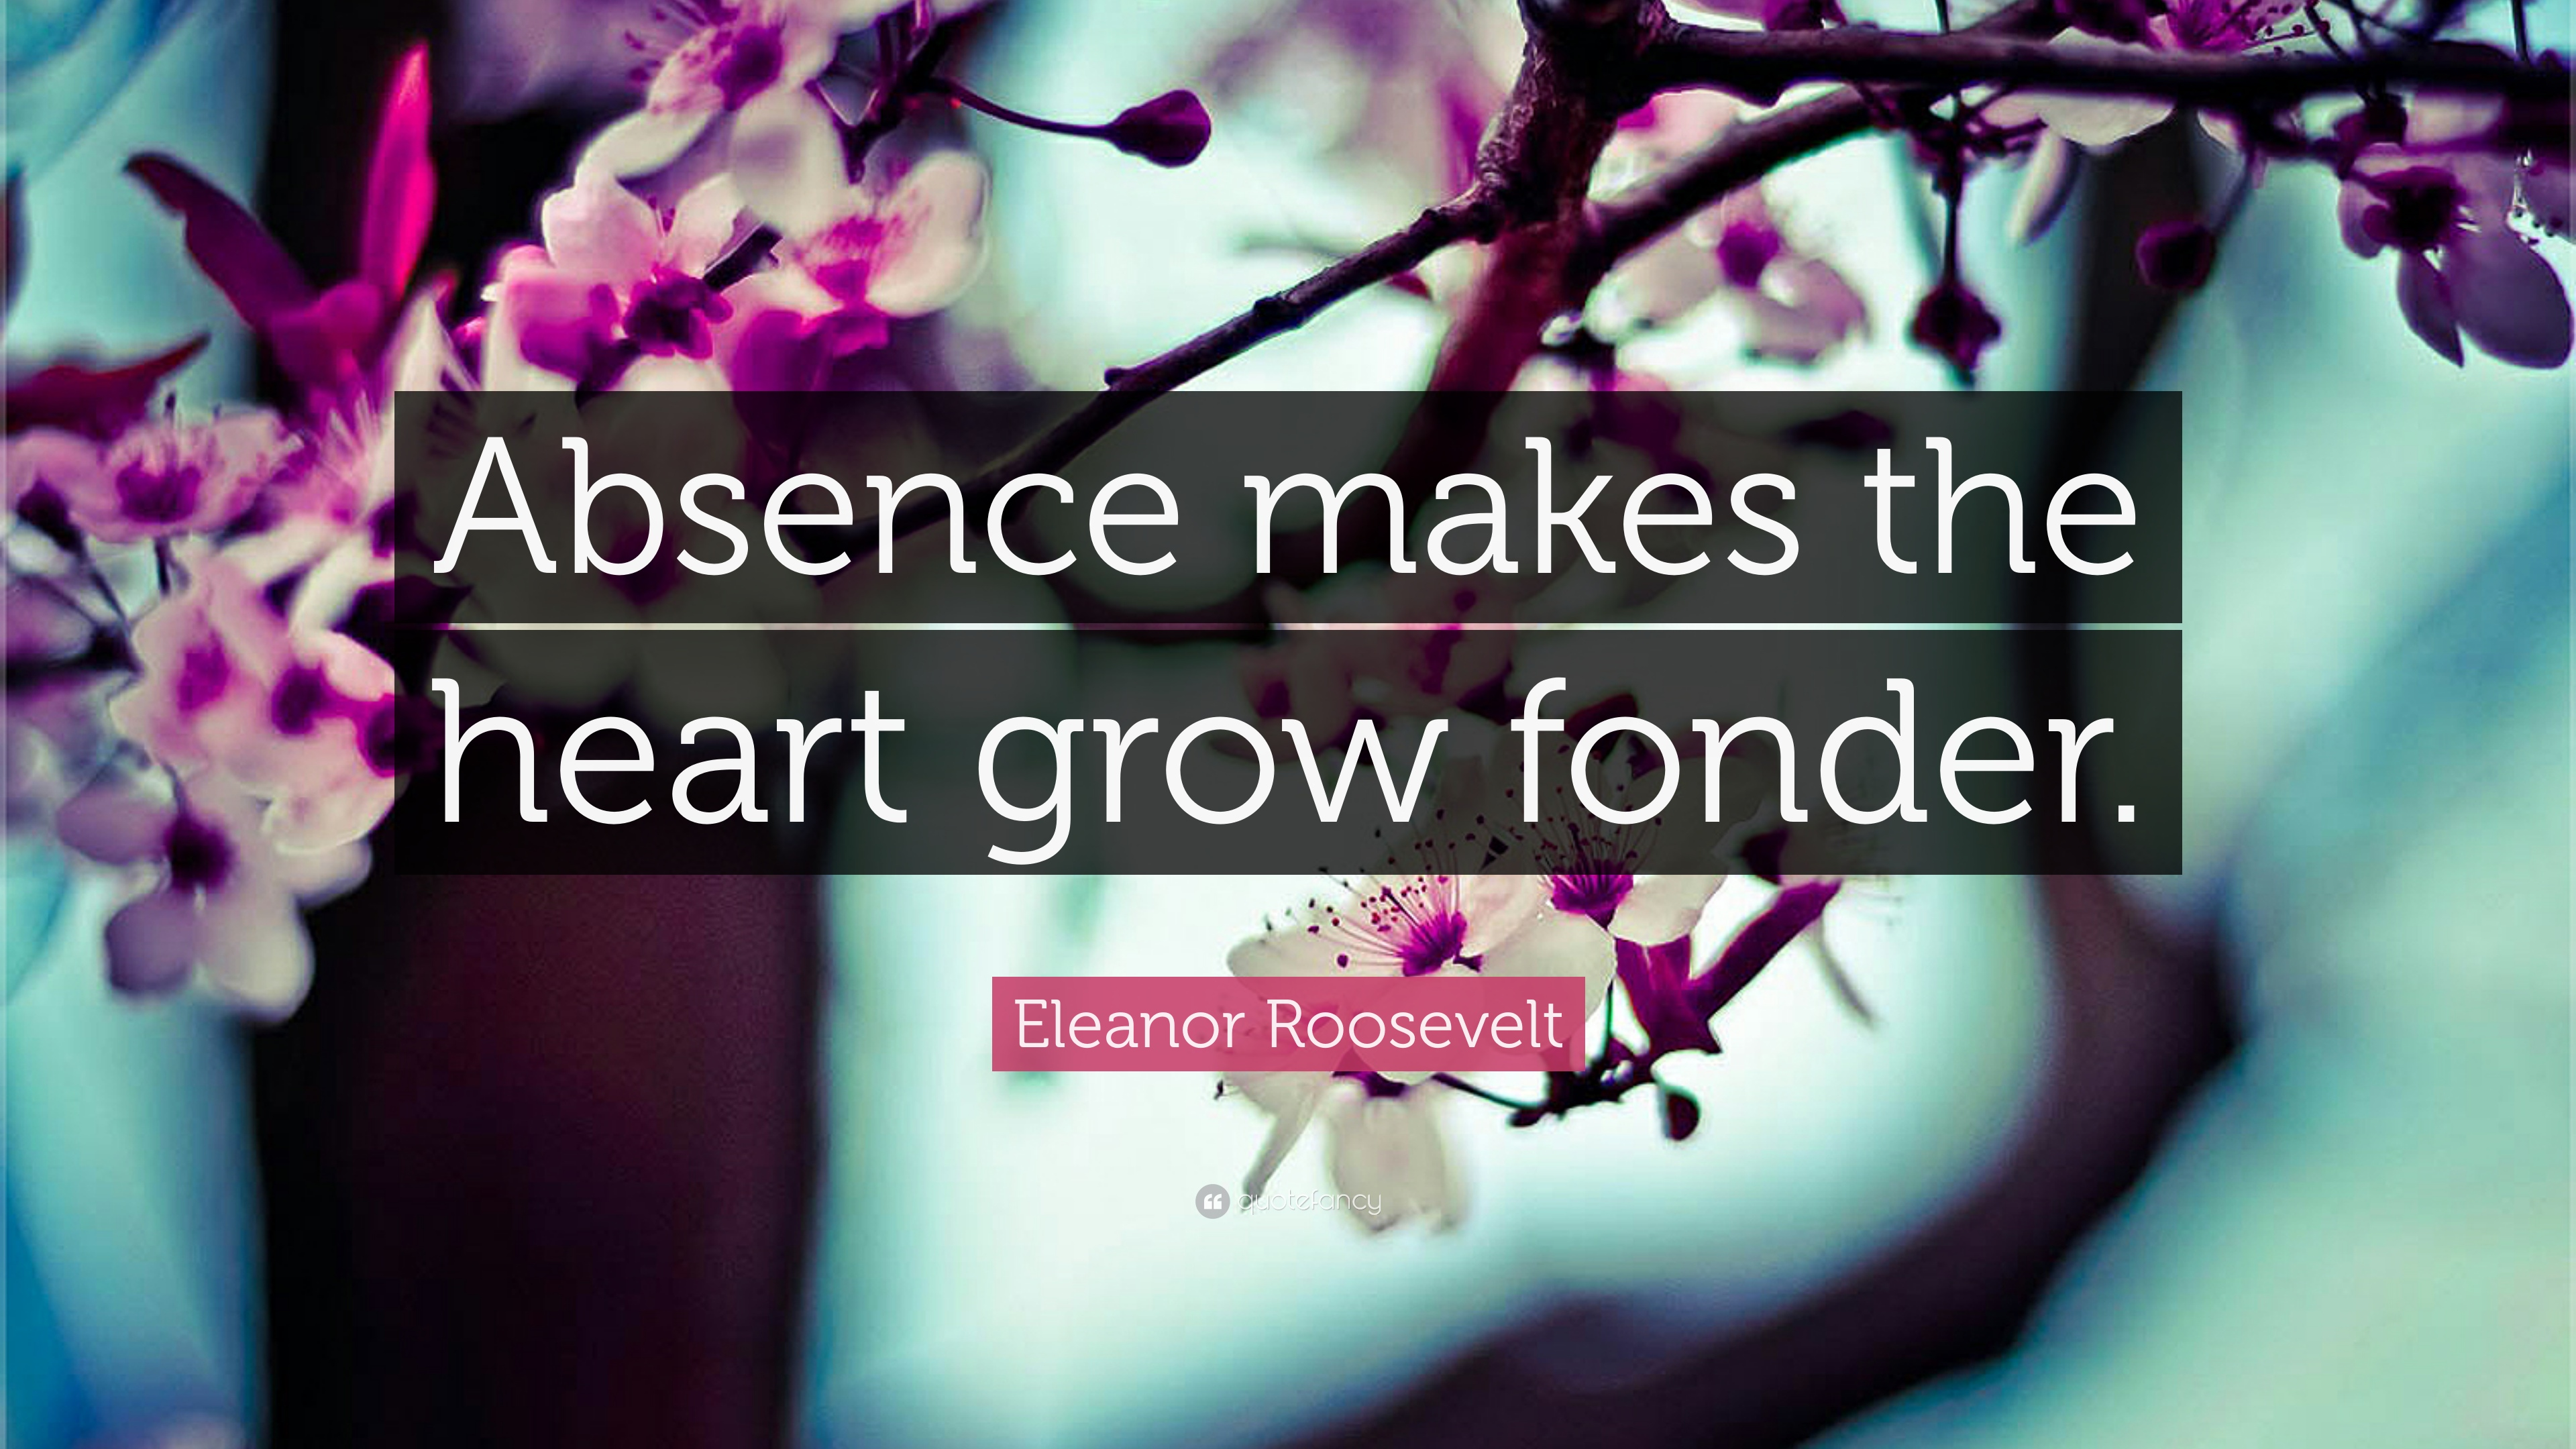 Eleanor Roosevelt Quote Absence Makes The Heart Grow Fonder 24